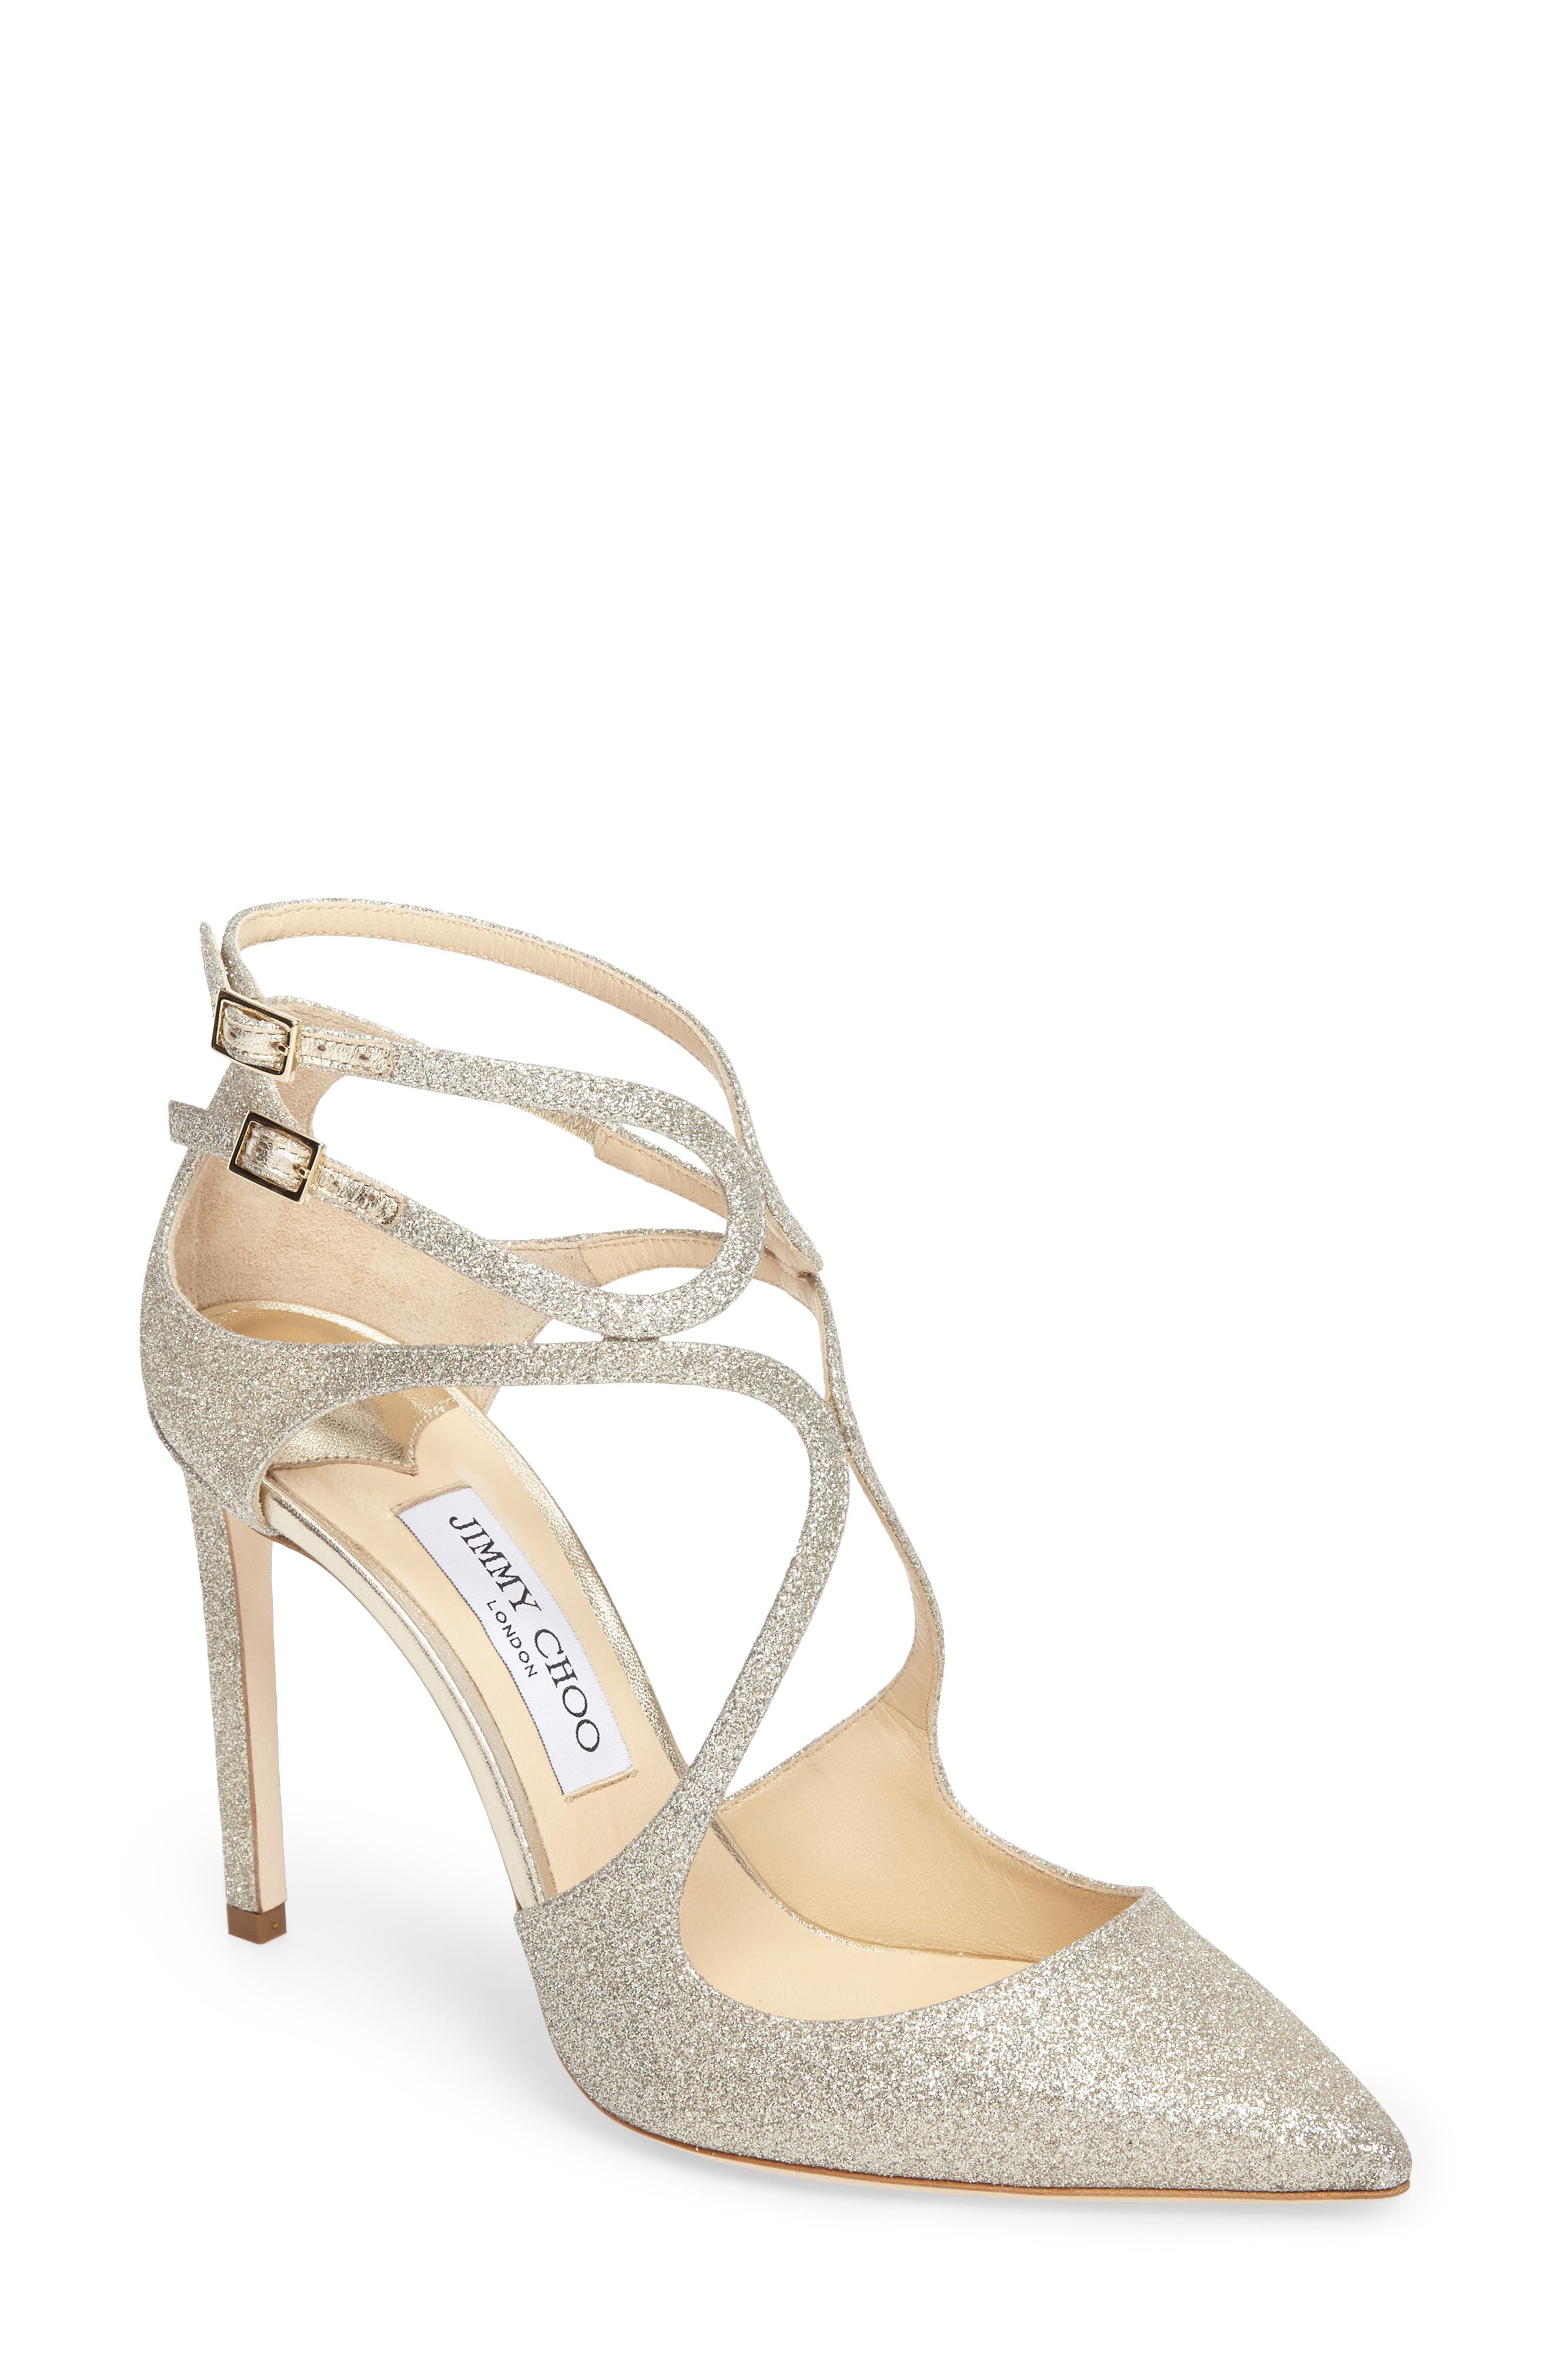 Lancer Strappy Glitter Pump,                             Main thumbnail 1, color,                             040